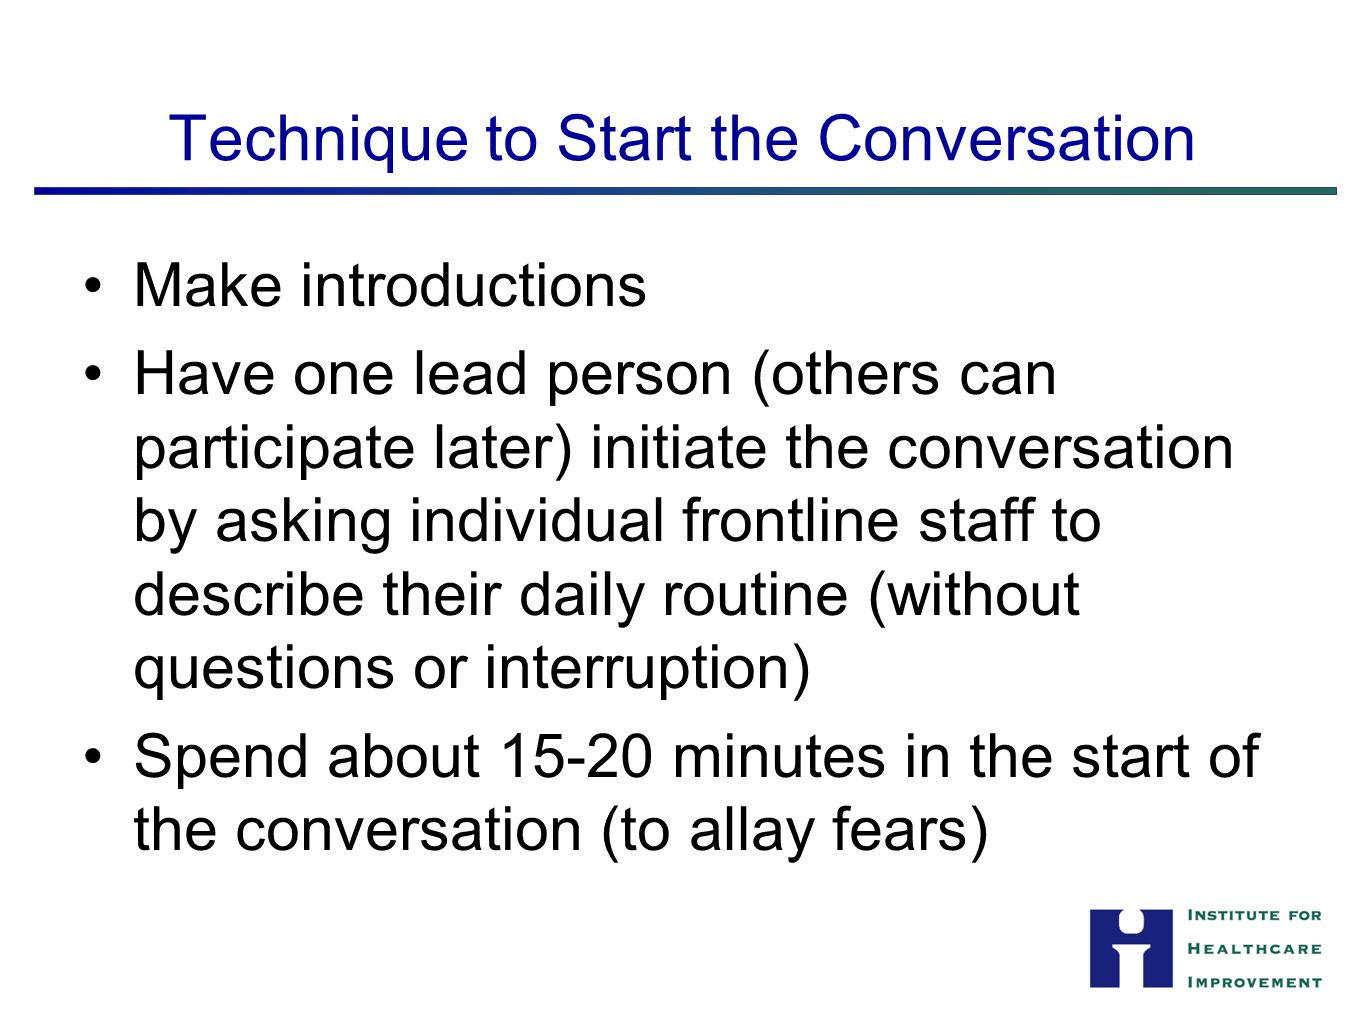 Technique to Start the Conversation Make introductions Have one lead person (others can participate later) initiate the conversation by asking individual frontline staff to describe their daily routine (without questions or interruption) Spend about 15-20 minutes in the start of the conversation (to allay fears) 8